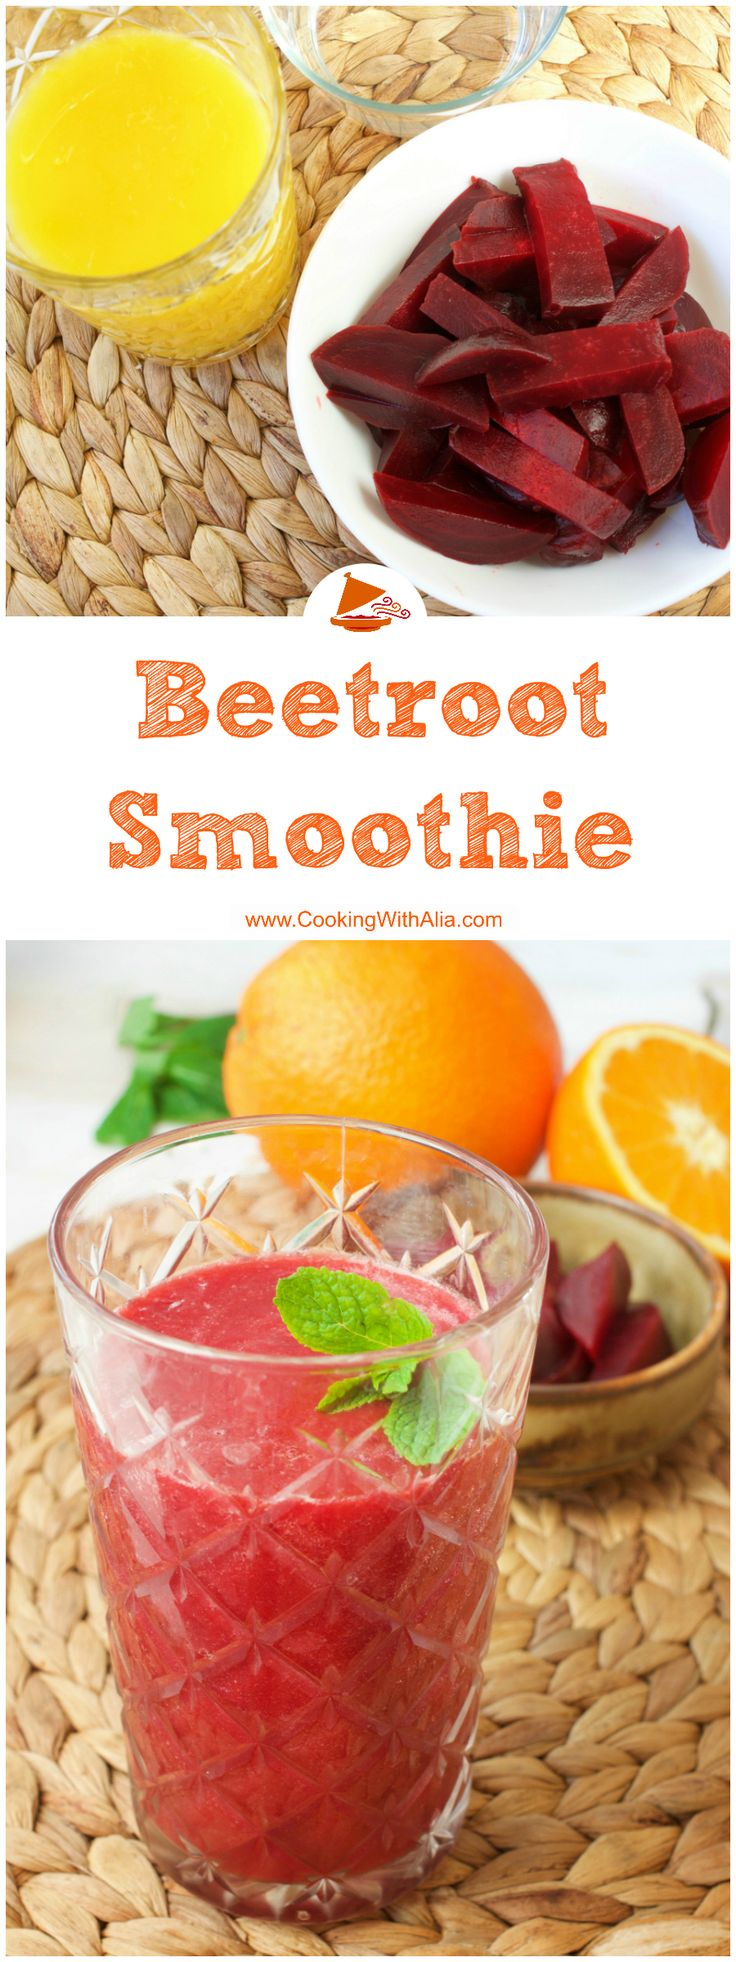 Here is the ultimate recipe to keep you healthy! Beetroot Smoothie is with no doubt a super food which you will enjoy. Check how you can make it and enjoy a happy healthy life  <3 #Morocco_cuisine #CookingWithAlia